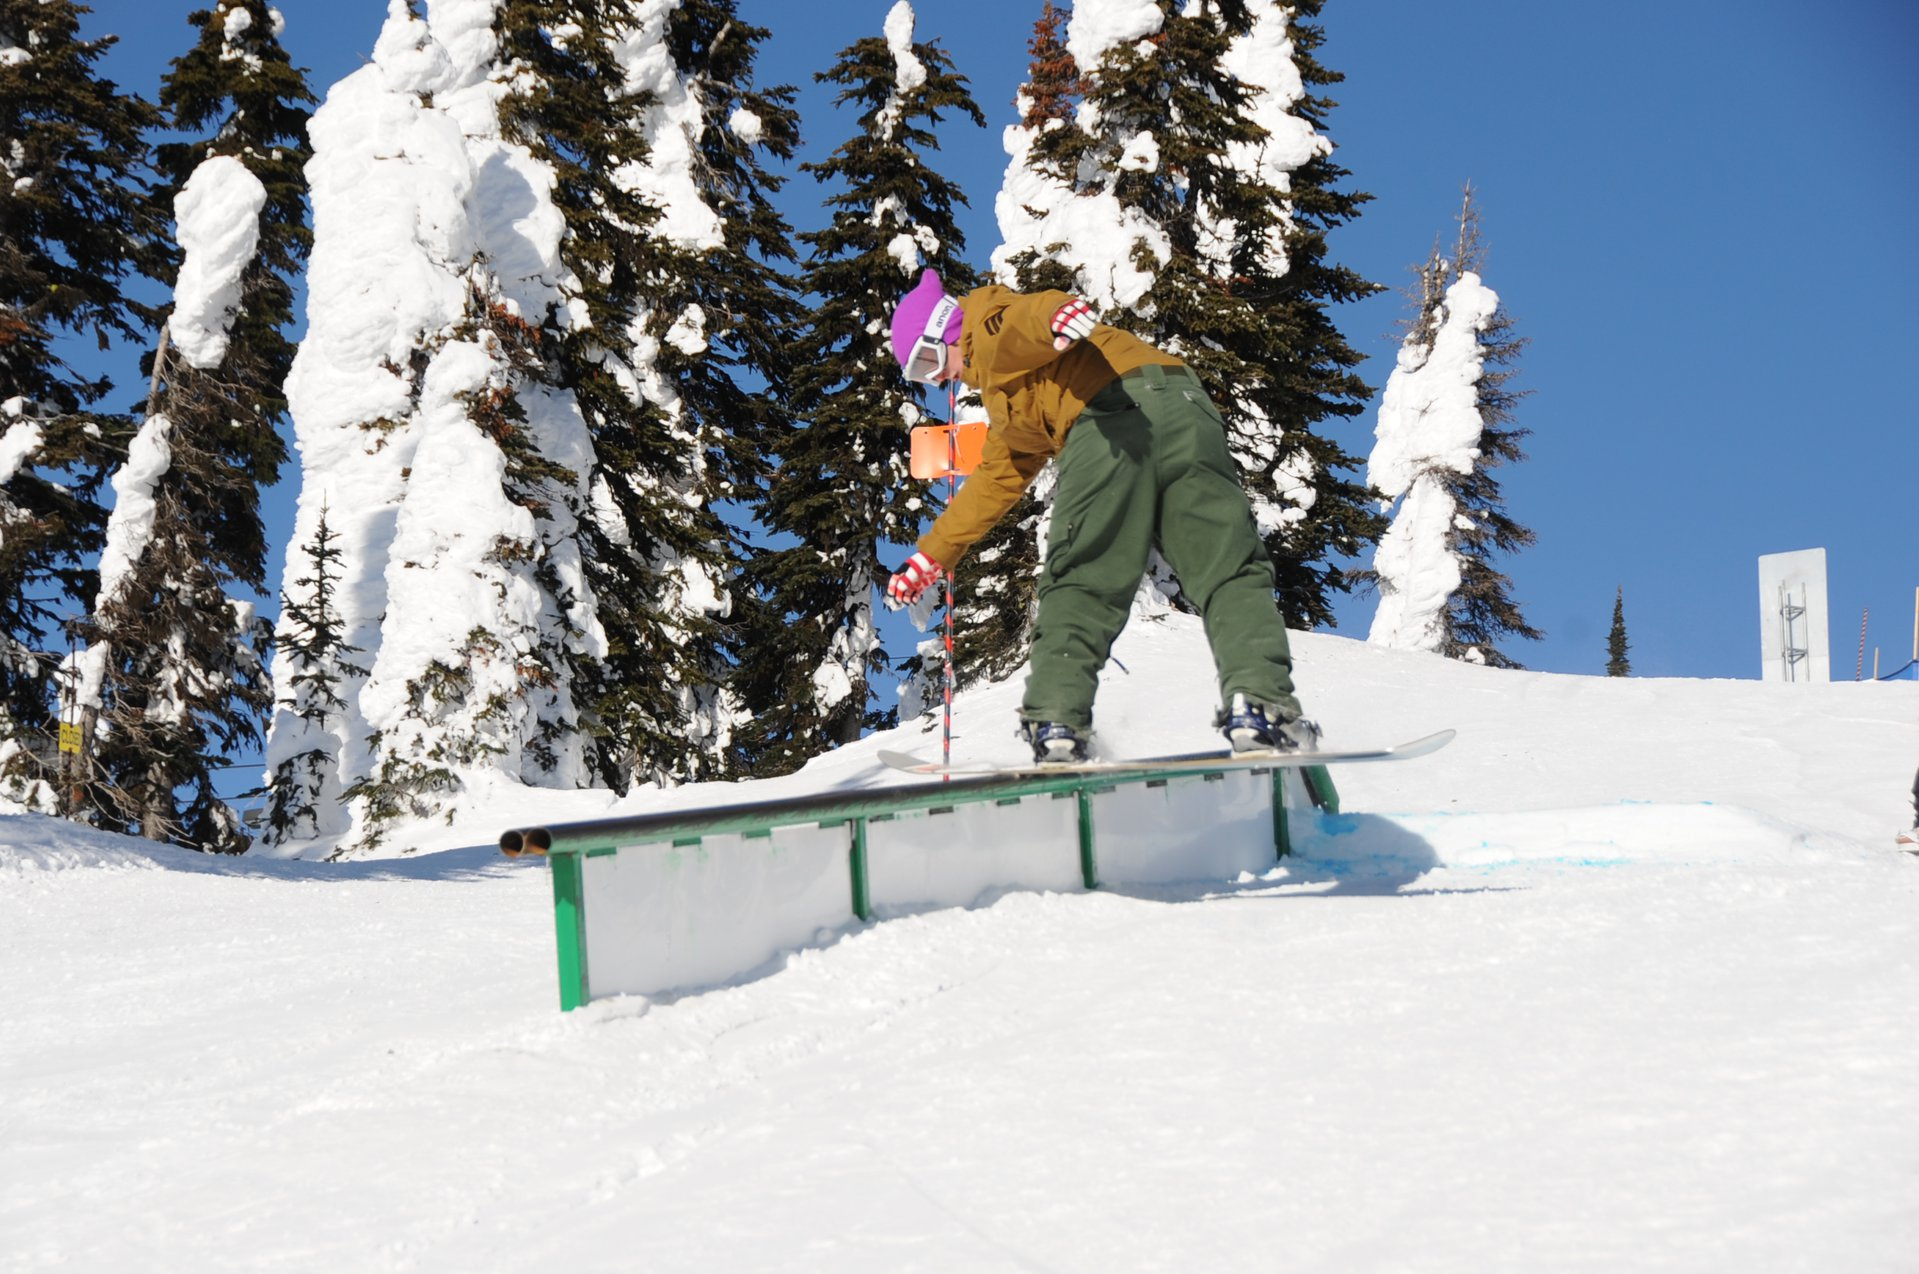 Feature 1 View 3 Snowboard